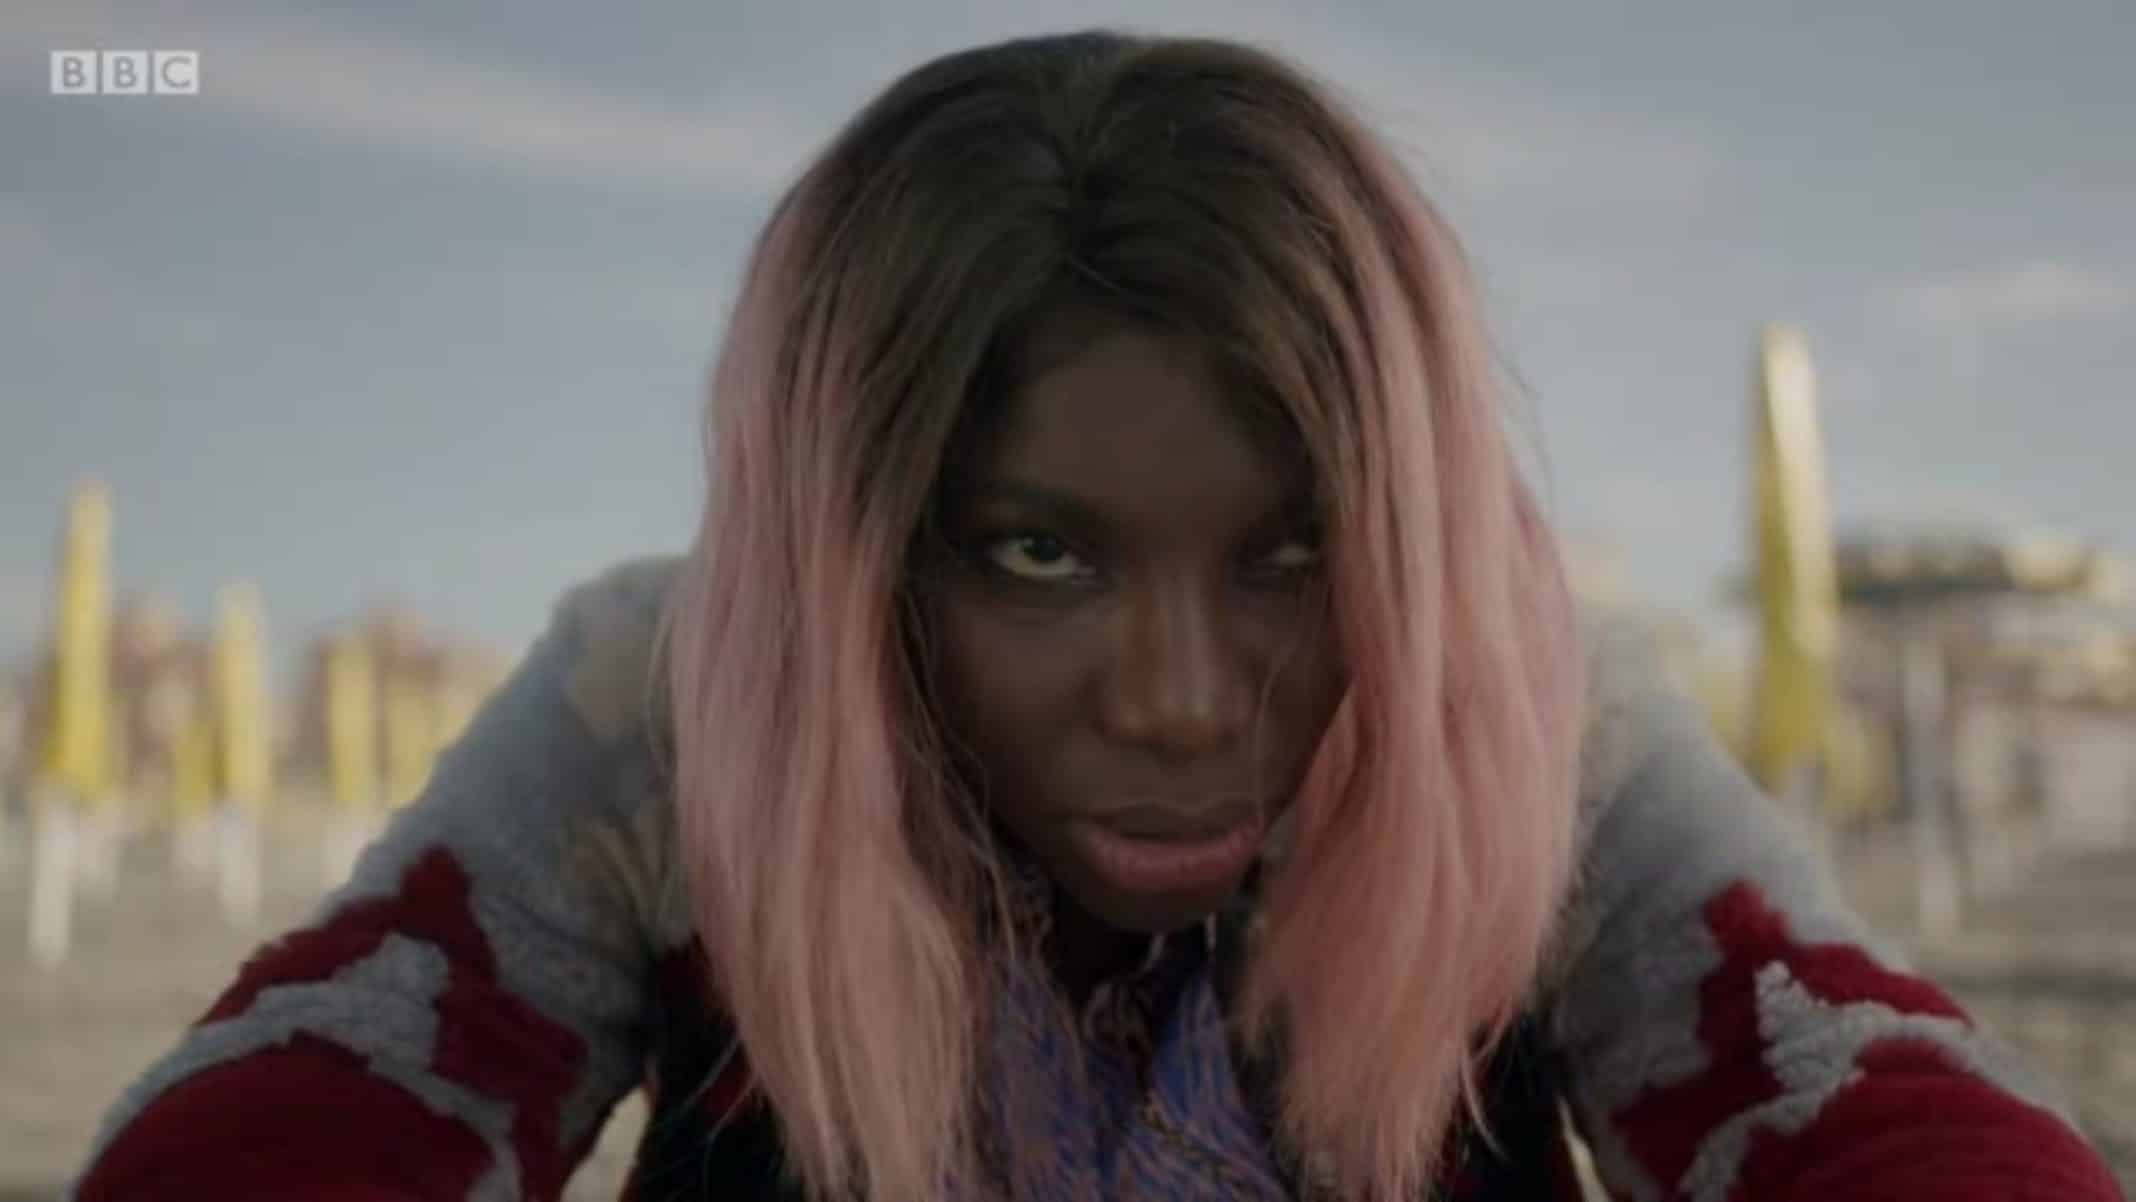 Arabella (Michaela Coel) on a beach, thinking about walking into the ocean - I May Destroy You